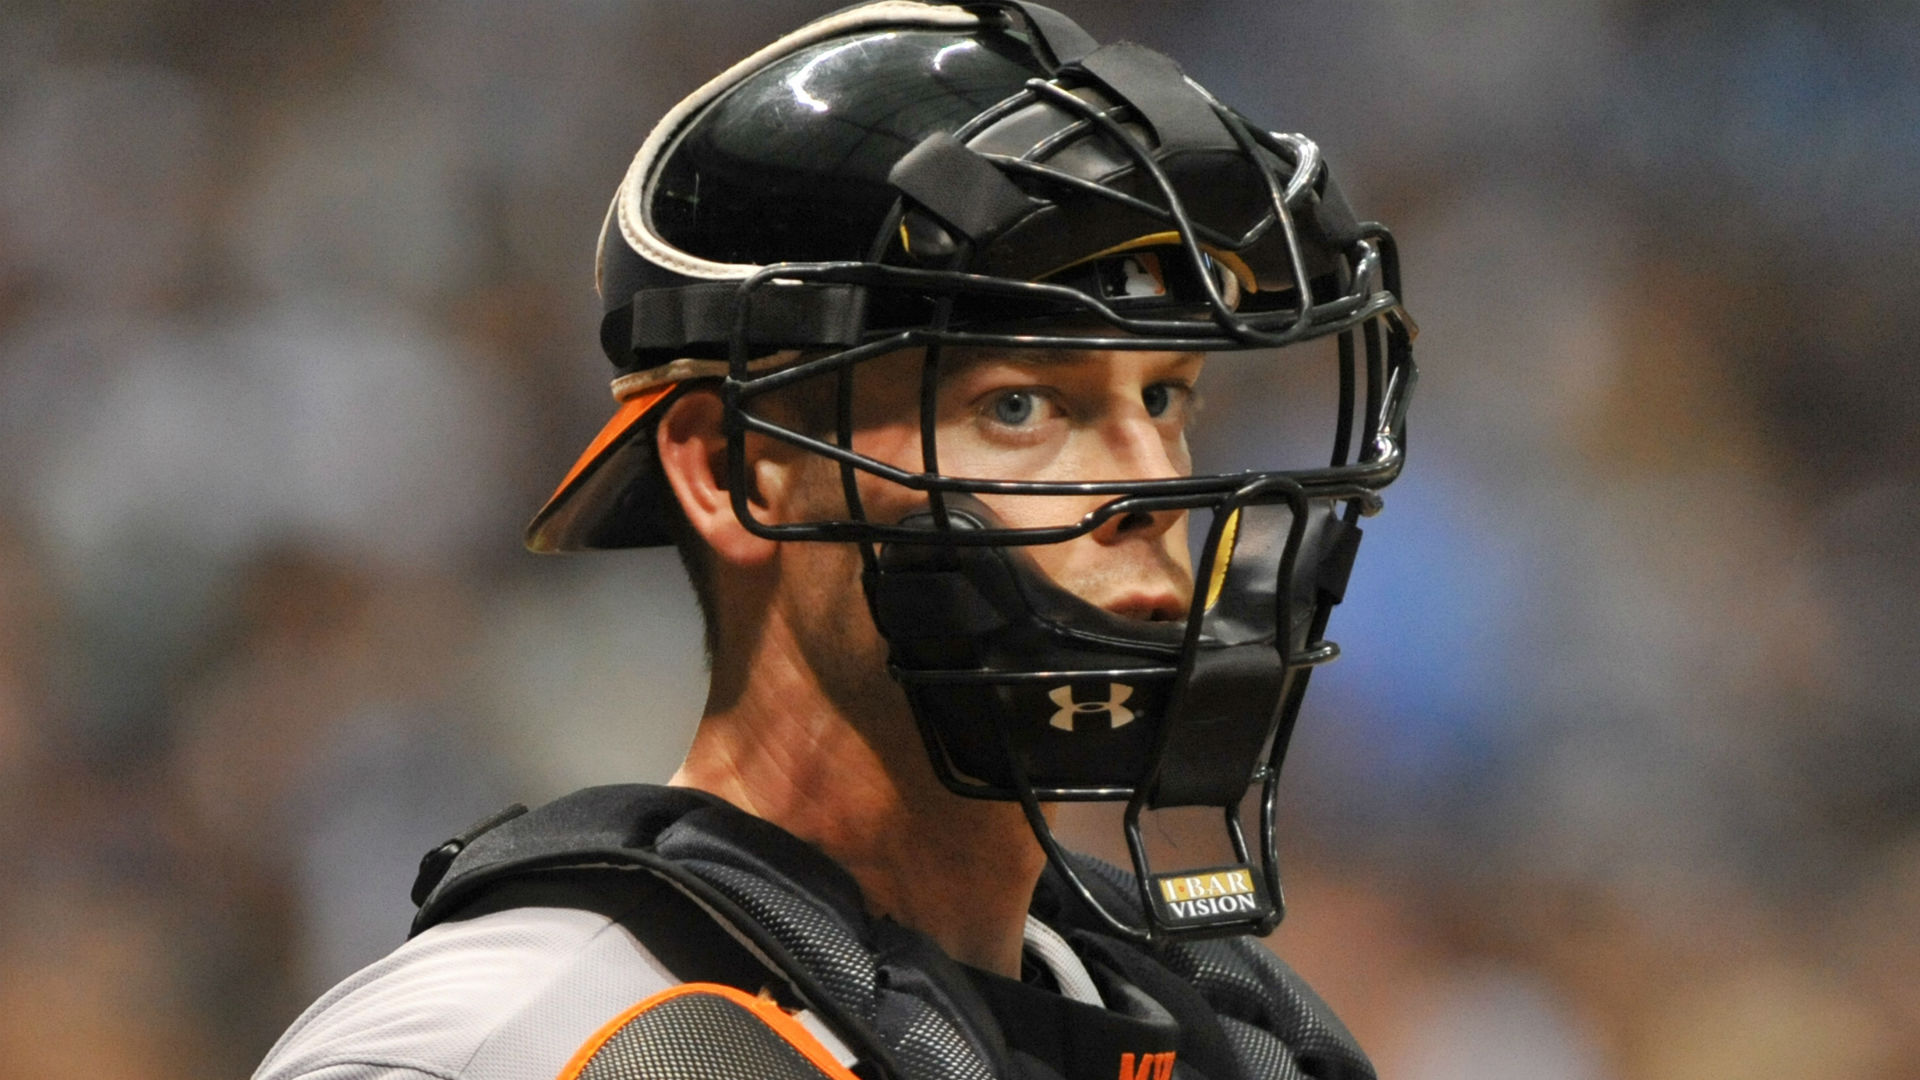 Nationals reportedly sign Matt Wieters to 2-year/$21M deal... What's next?